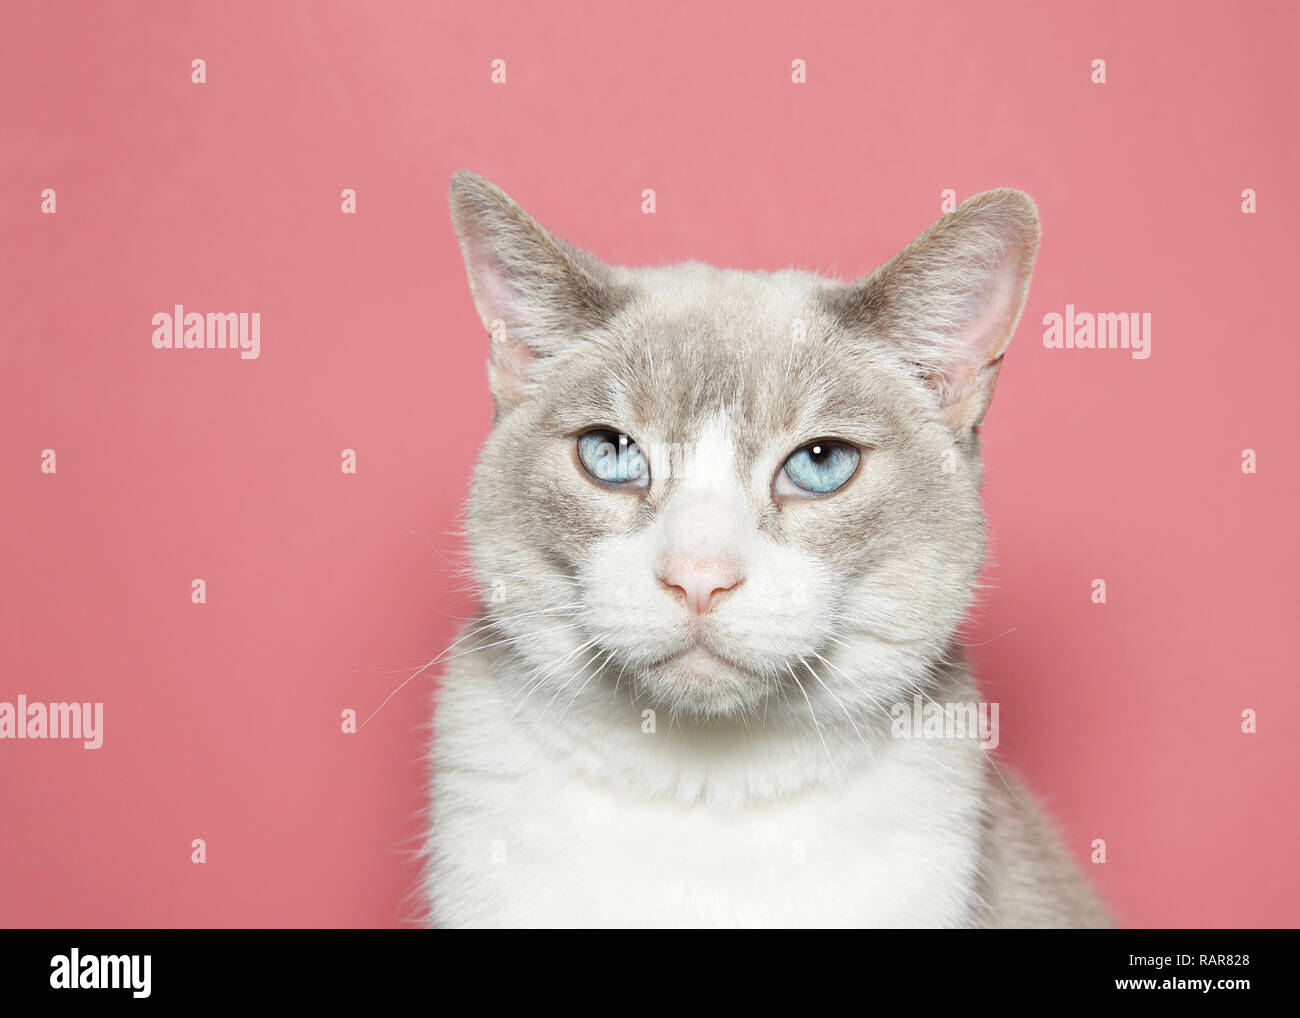 Close up portrait of a diluted siamese cat with beautiful blue eyes looking directly at viewer with skeptical expression, Coral pink background with c - Stock Image